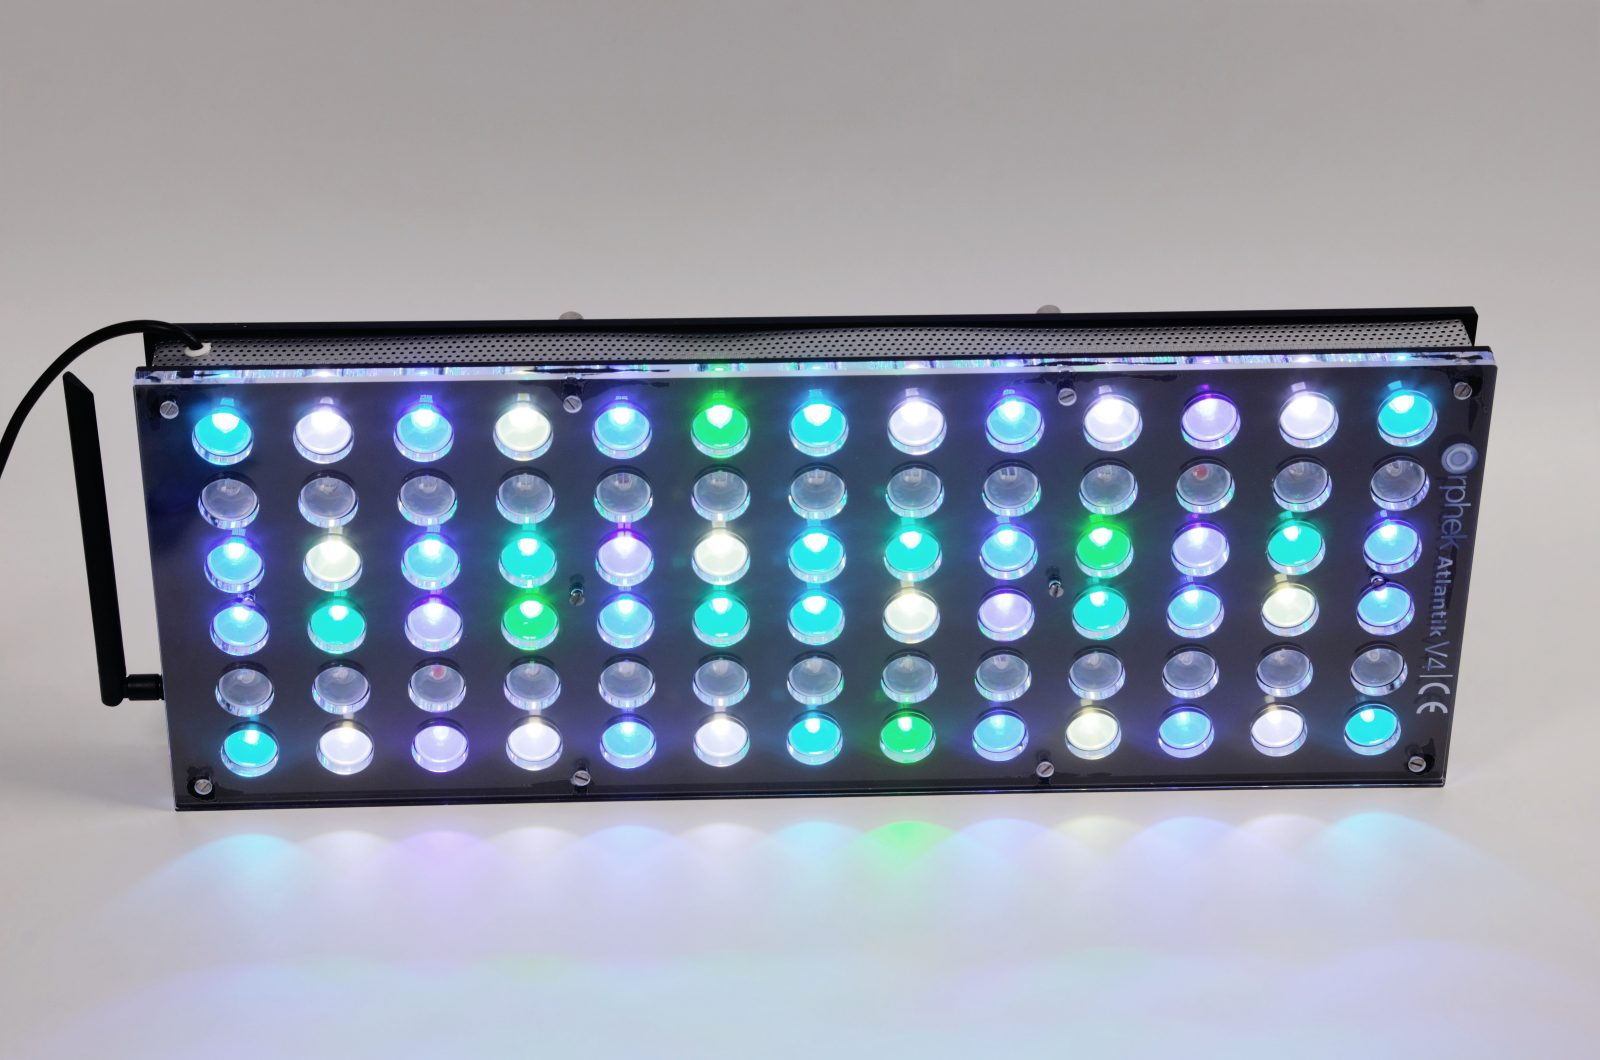 Orphek-Aquarium-LED-Lighting-Reef-Atlantik-V4-light-on-channel 1+2